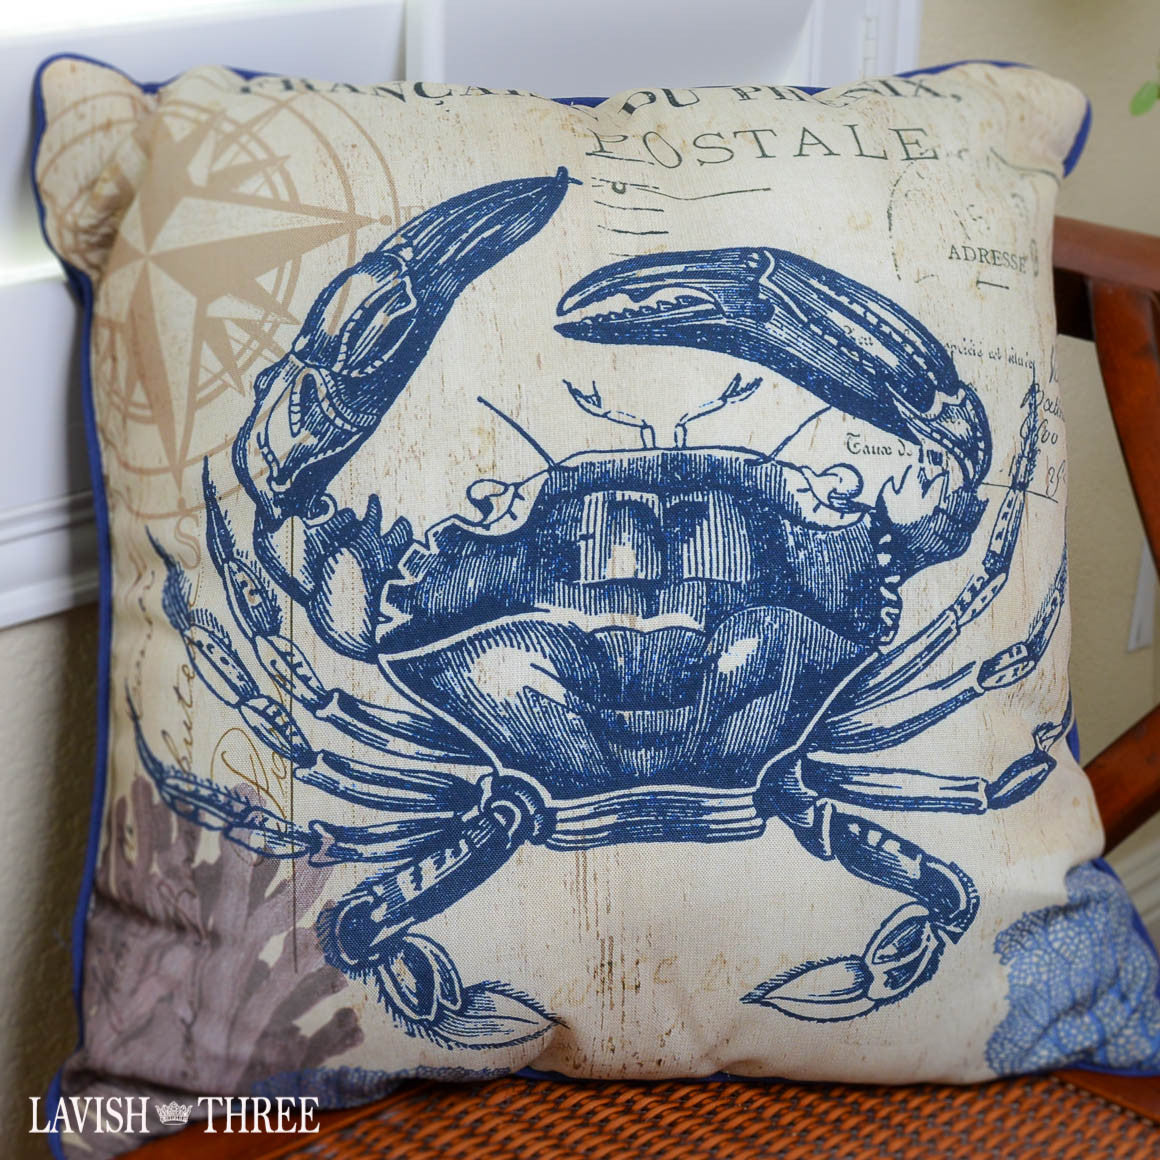 Royal blue crab nautical beach cottage coastal decor throw pillow Lavish three 3